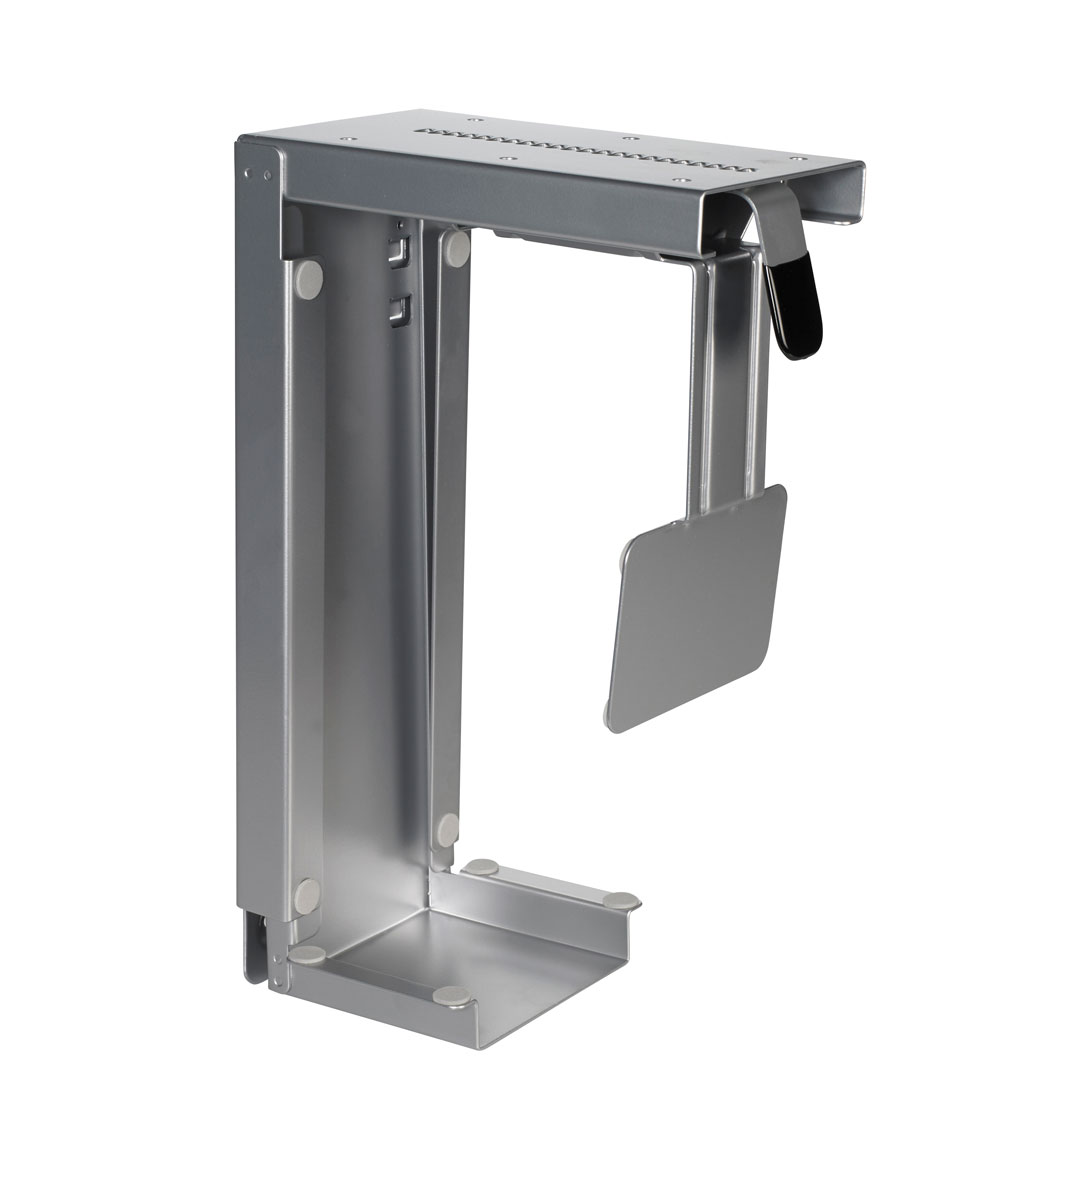 Adjustable Cpu Holder Cs 30s For Desk Or Wall Mount